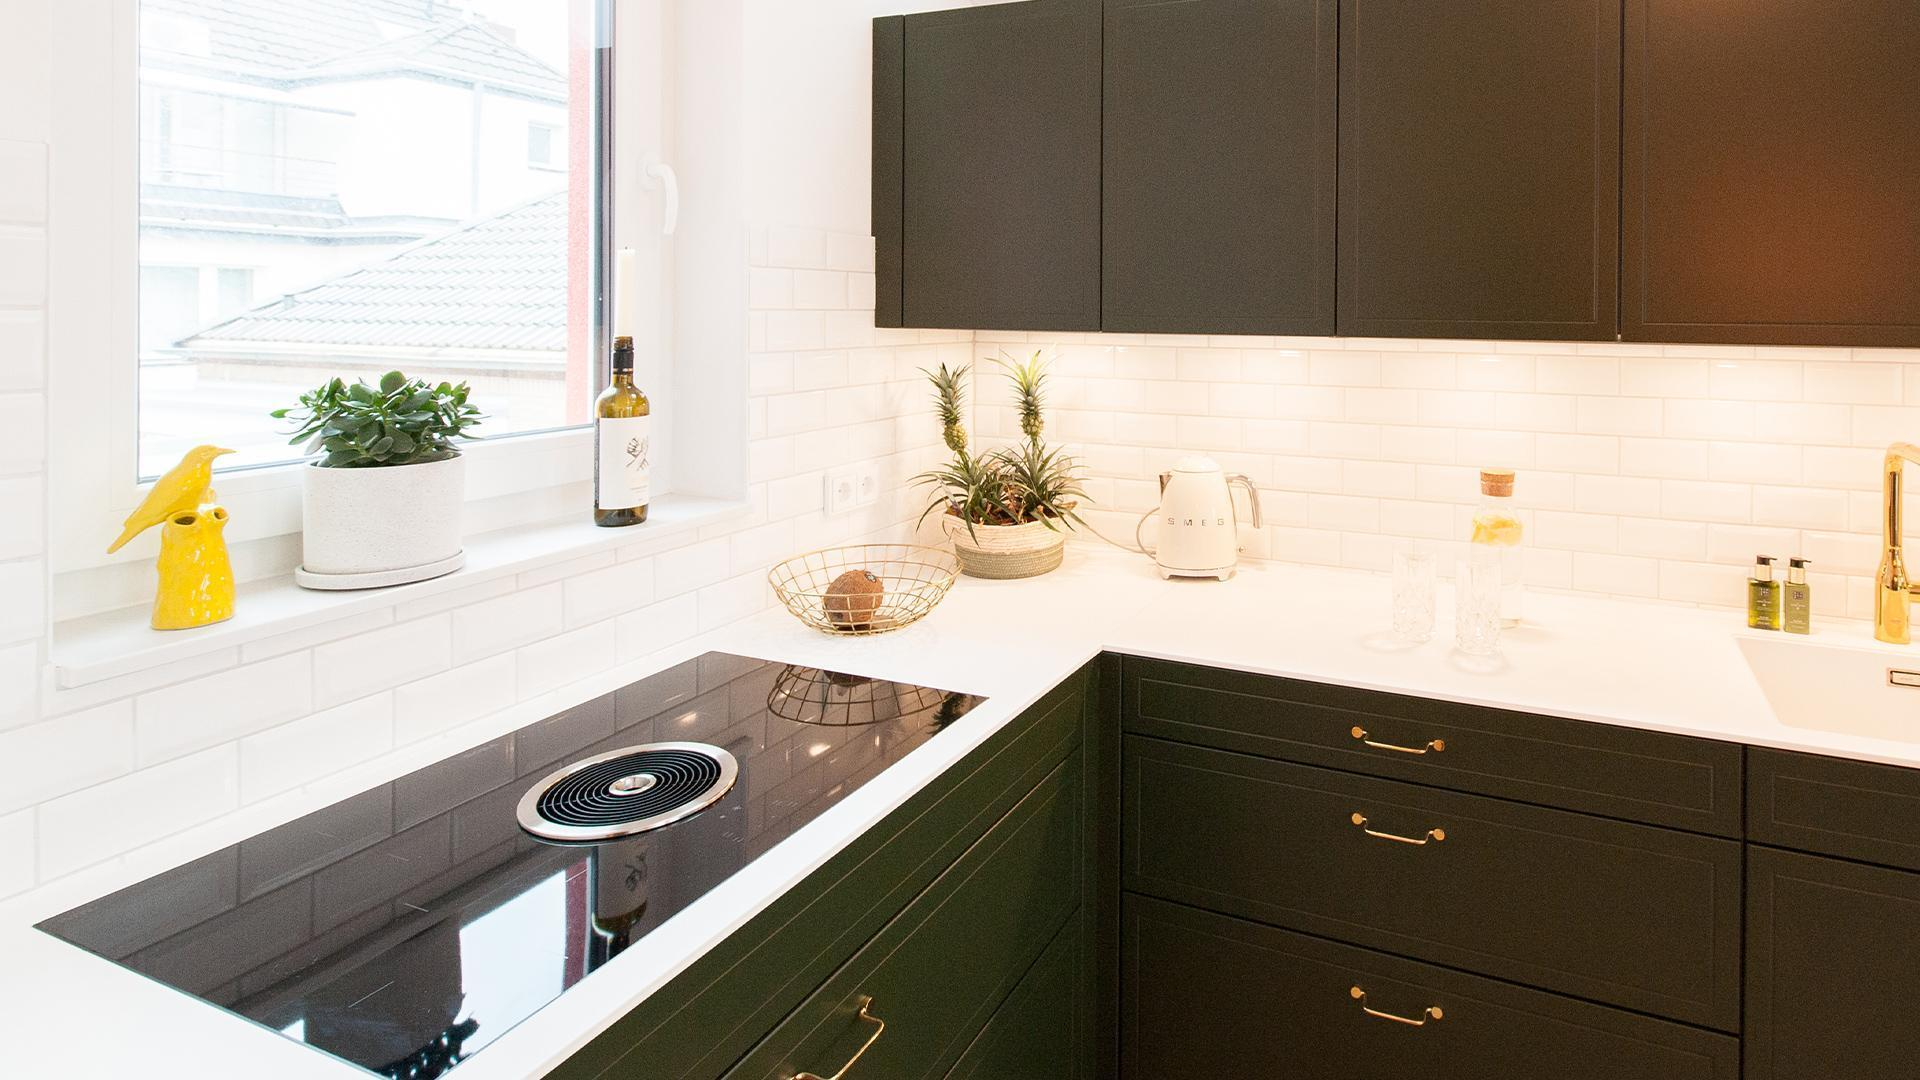 THE GREATEST POSSIBLE AMOUNT OF FRESH AIR WHILE COOKING